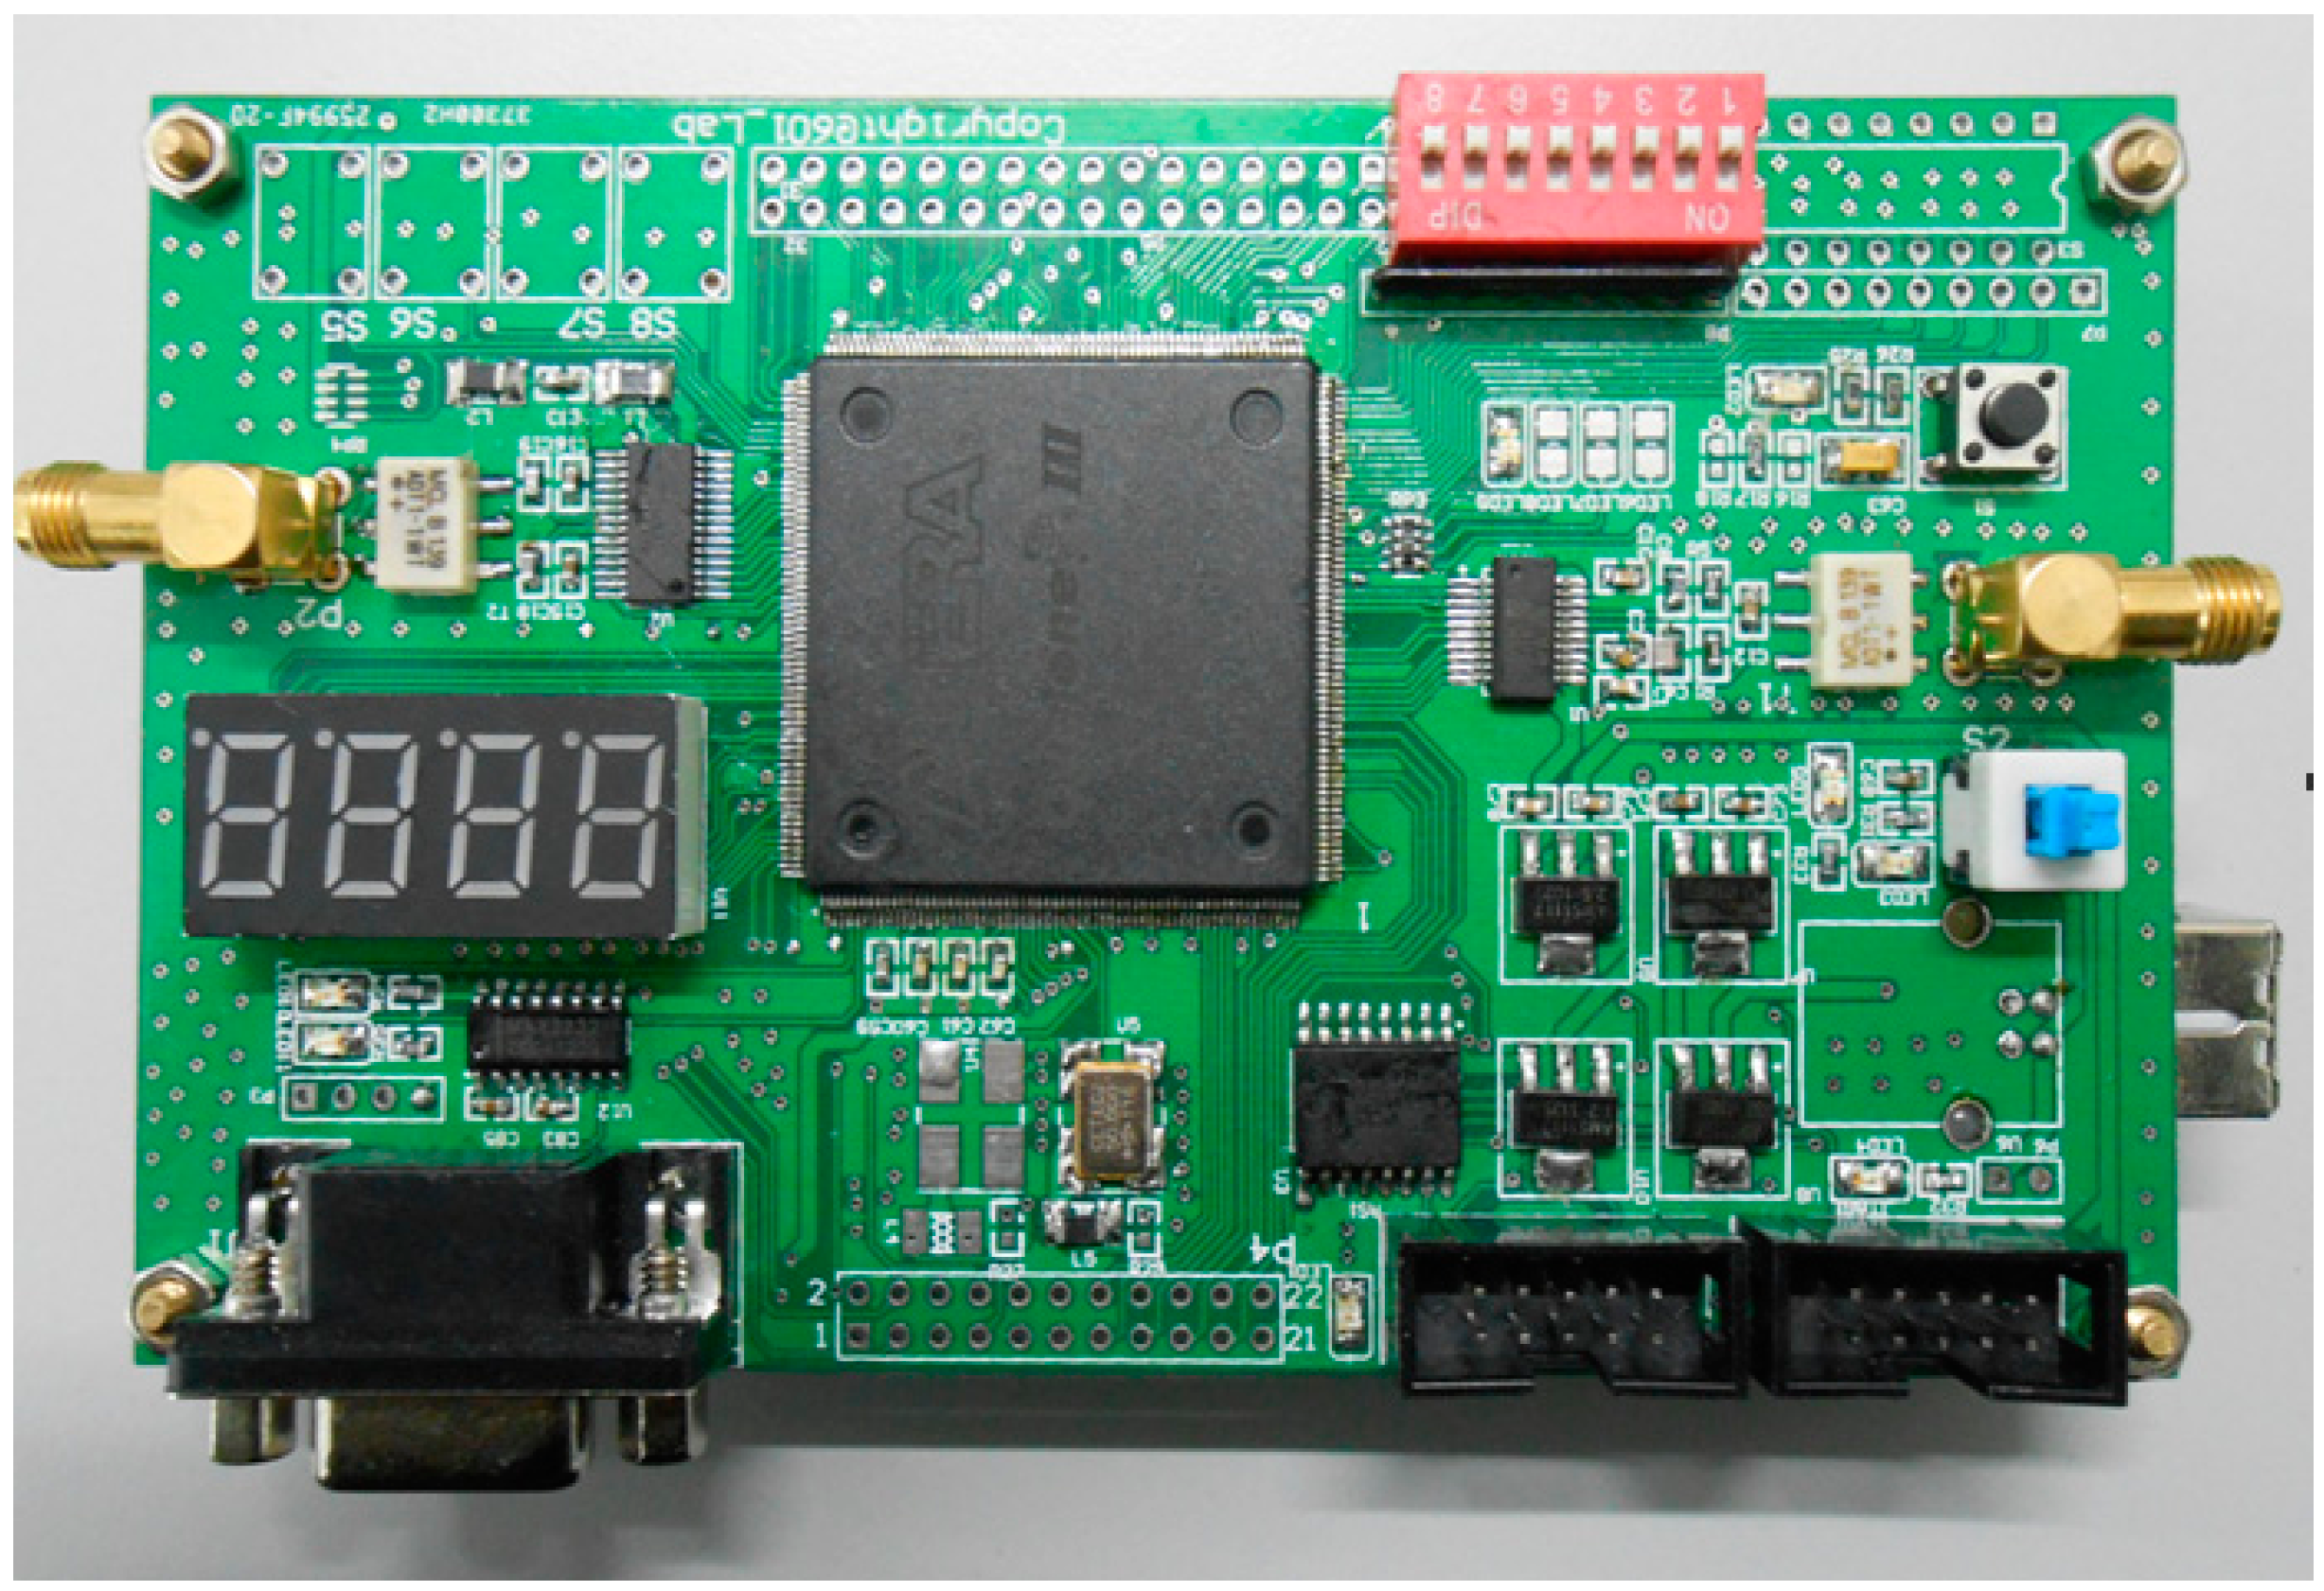 victor thesis fpga The sata controller developed for this thesis will be used in a radar data the data fpga on the board is connected to a sata interface connector using.